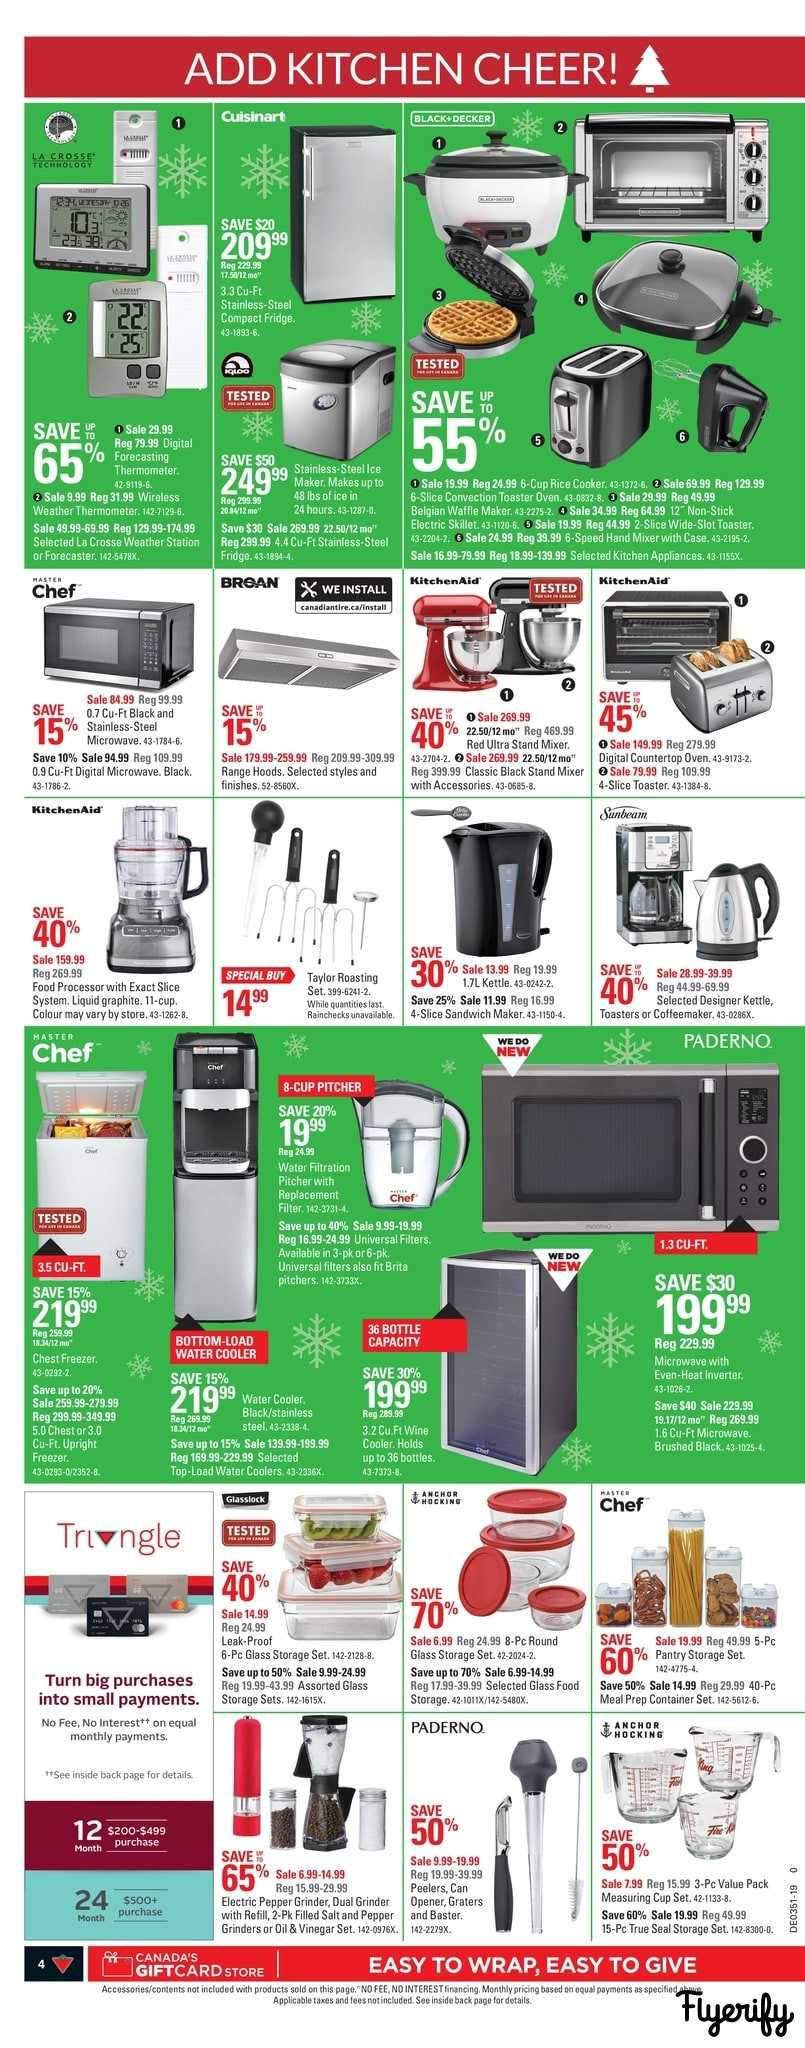 Canadian Tire Toaster Sale All About Image Hd